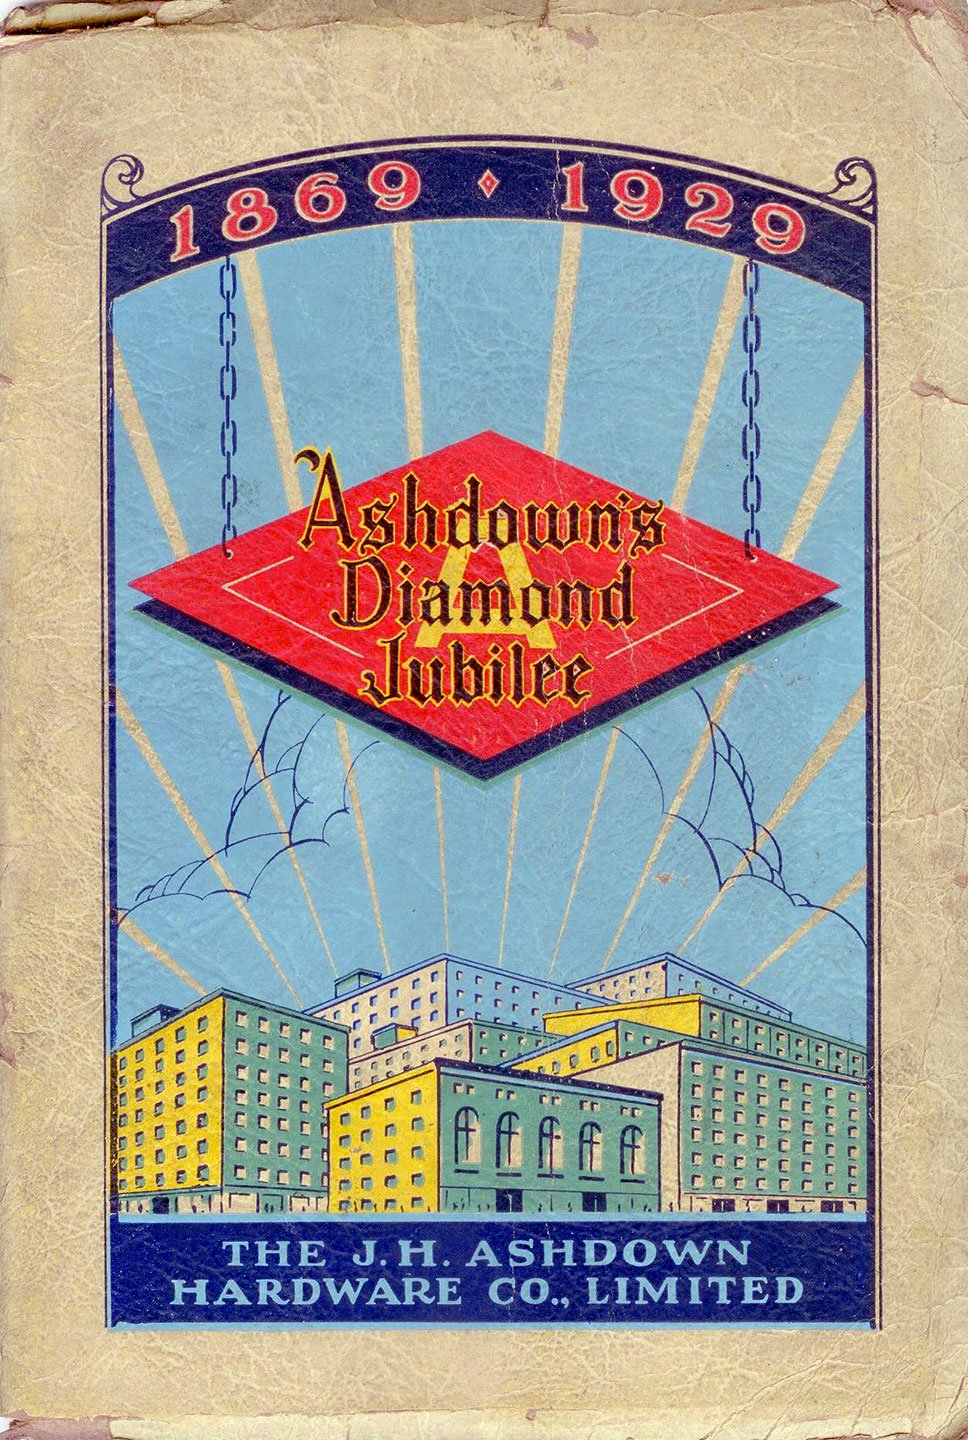 Diamond Jubilee of the J. H. Ashdown Hardware Co., Limited